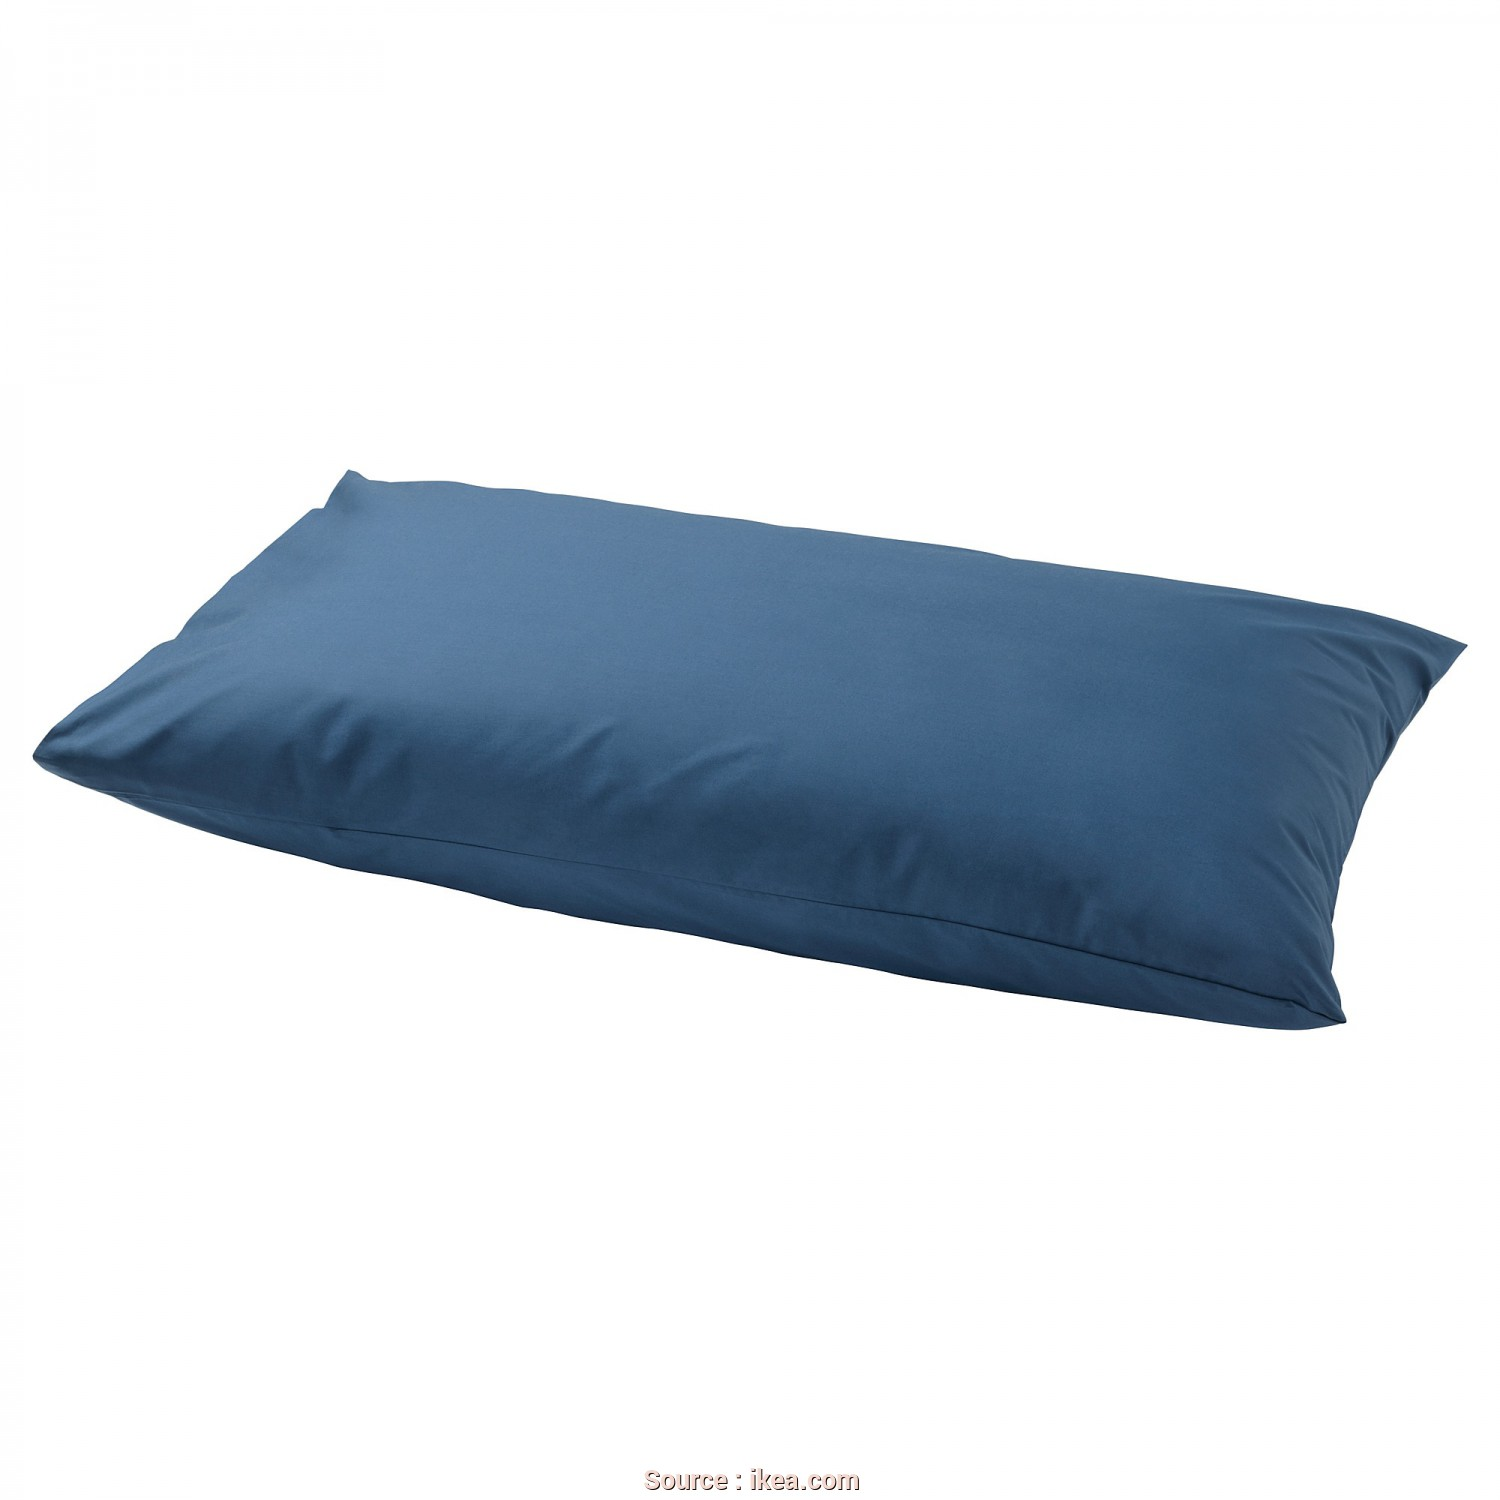 Ikea Cuscino Hampdan, Rustico Pillowcases, Shaped Pillow Cases & More, IKEA